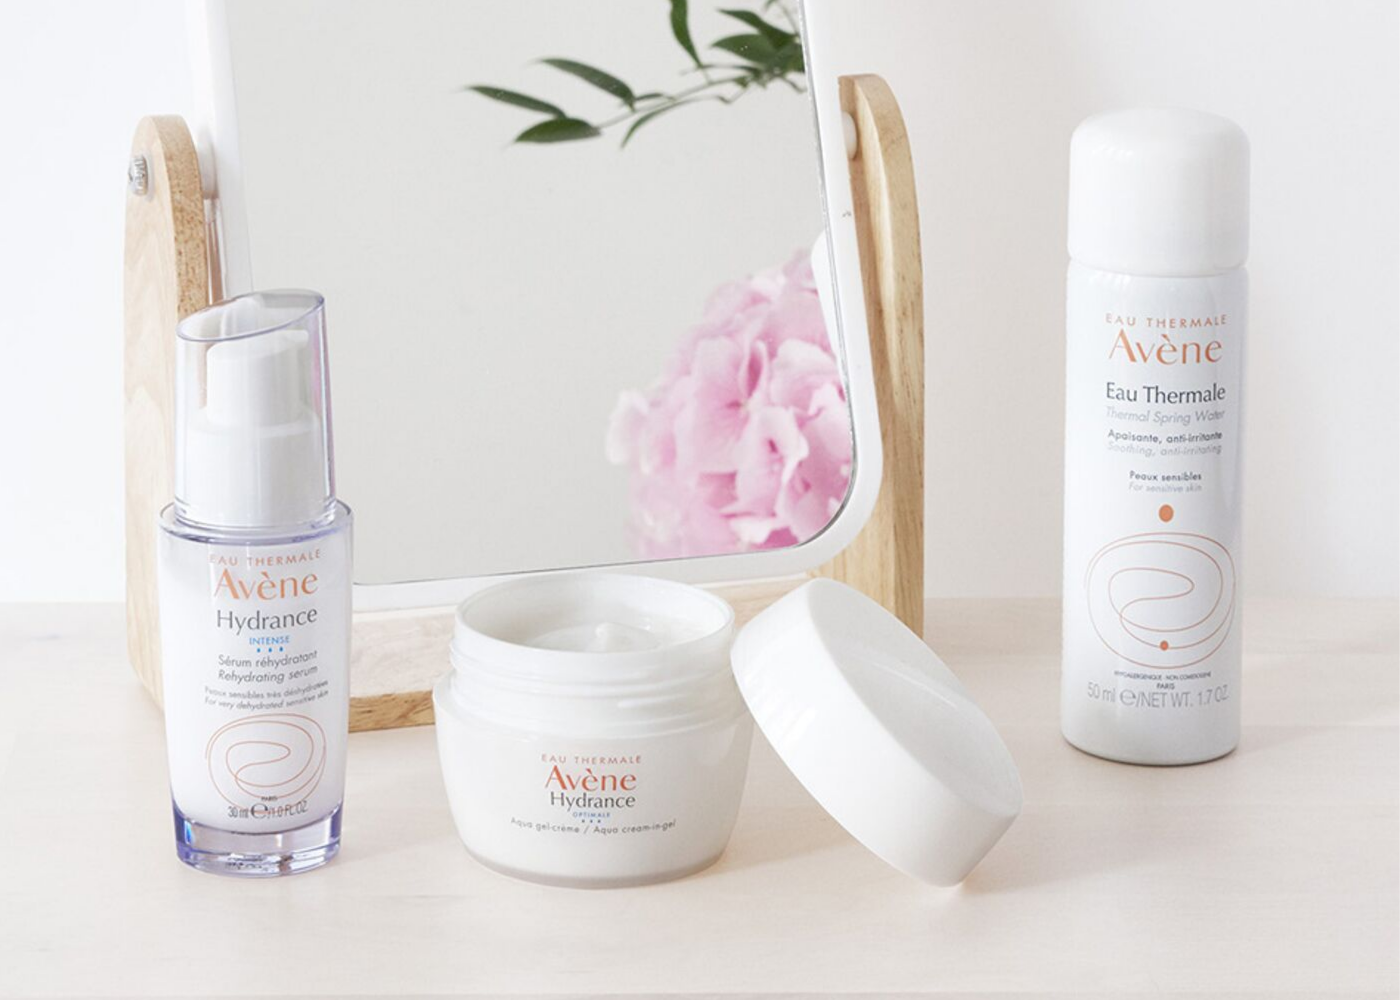 In need of hydration? The Avene Hydrance range plumps your skin from within. Photography: Avene